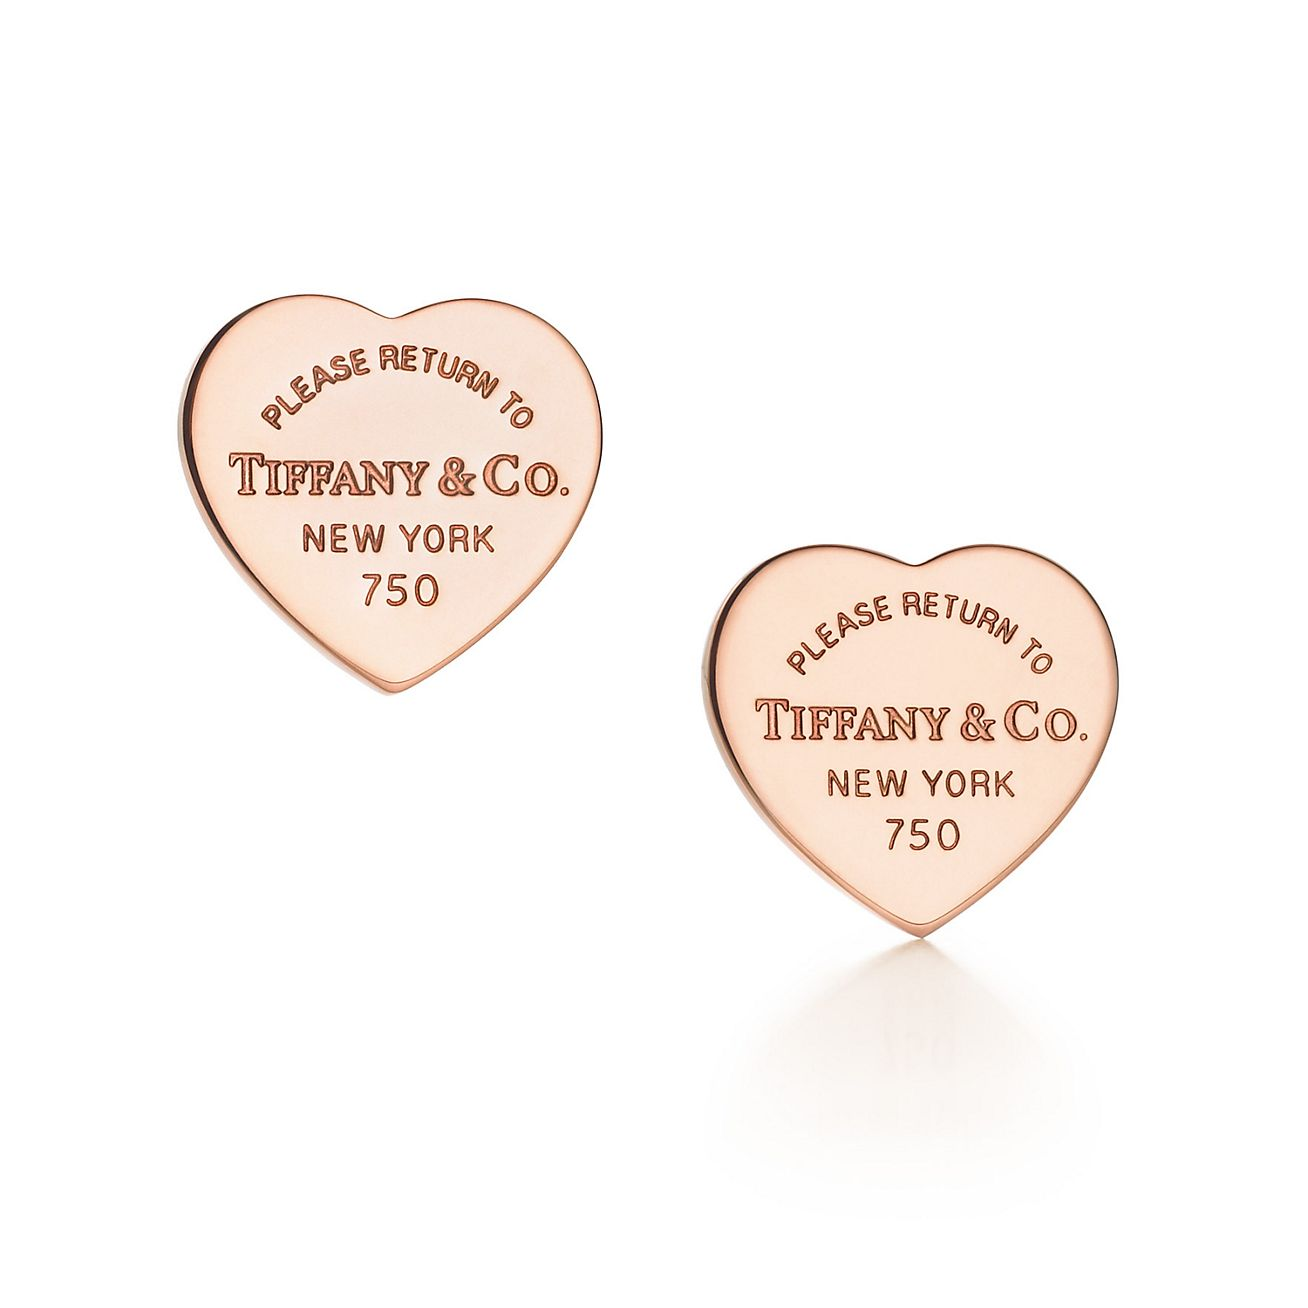 Jewelry Earrings Return To Tiffany Mini Heart Tag Earrings 26544947 Tiffany Earrings Heart